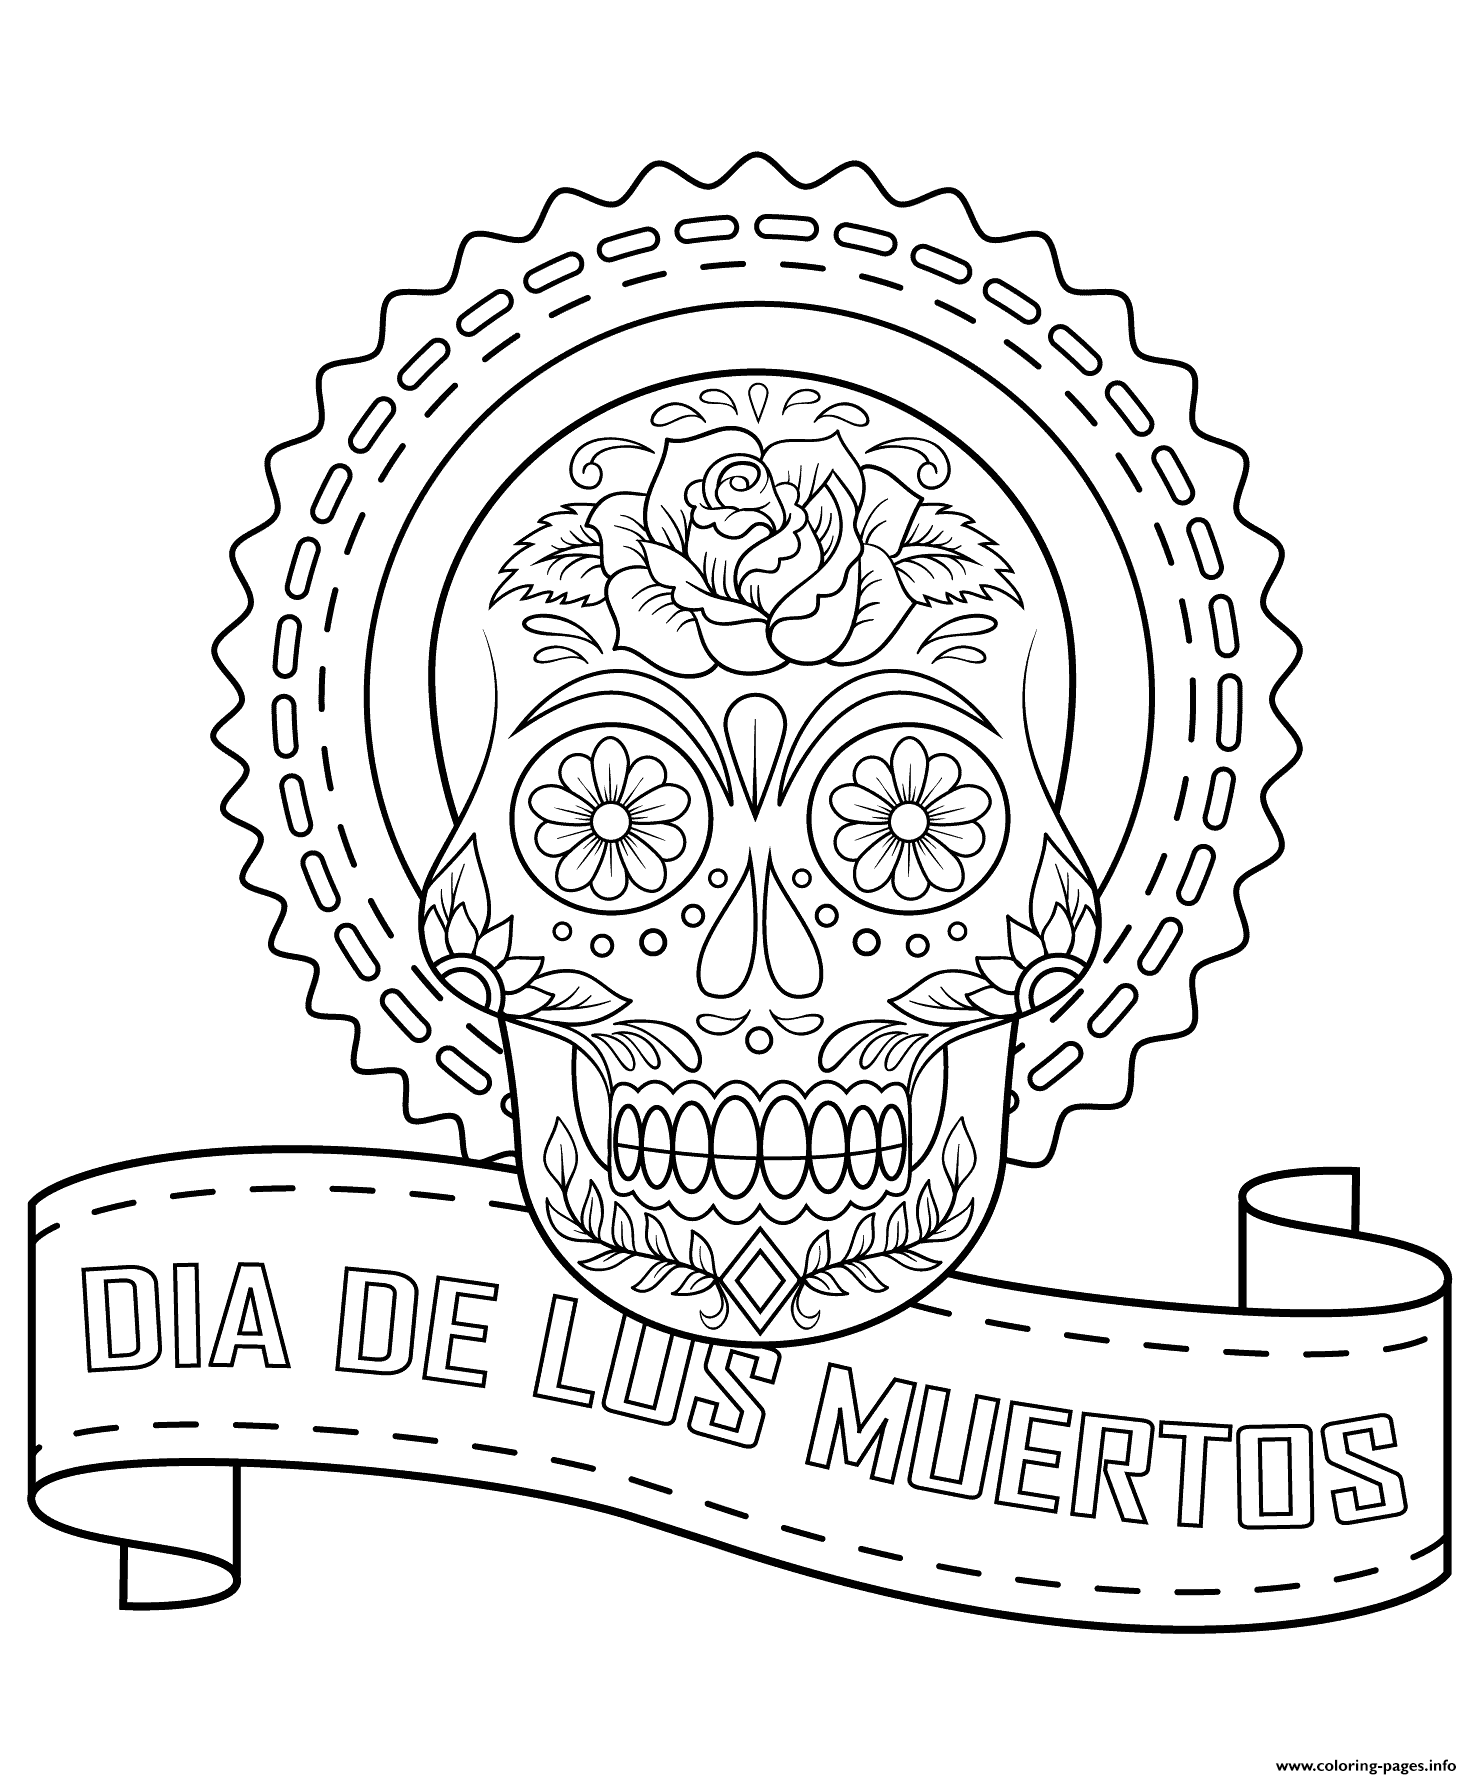 Dia De Los Muertos Calavera Coloring Pages Printable